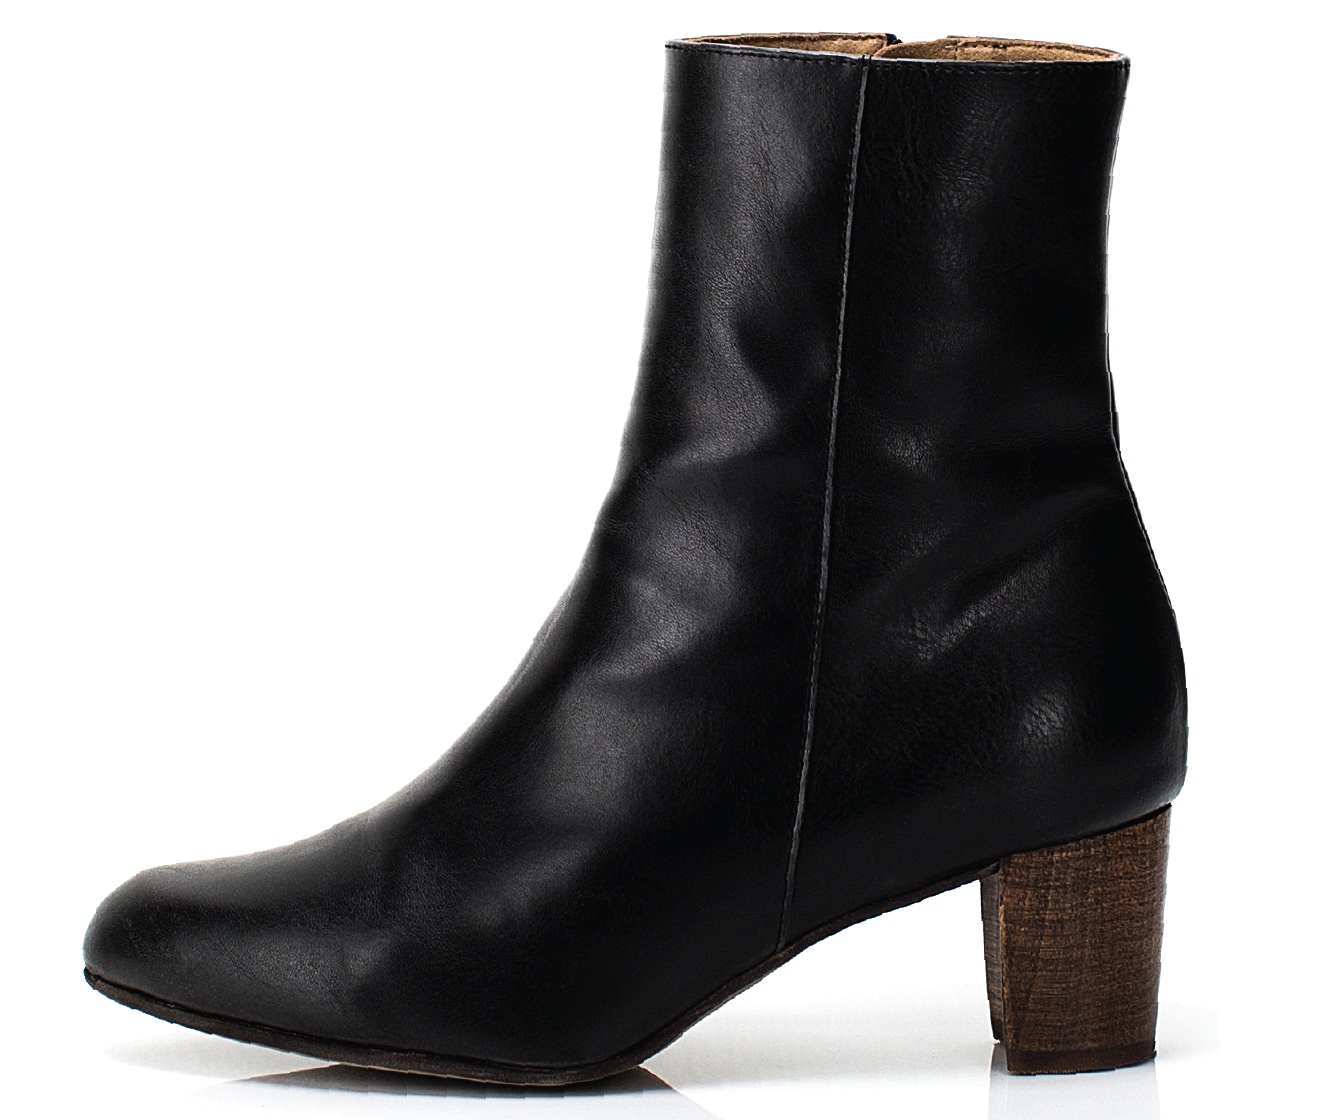 Eco friendly vegan boots designed in New York Ciry, America by Bhava Studio